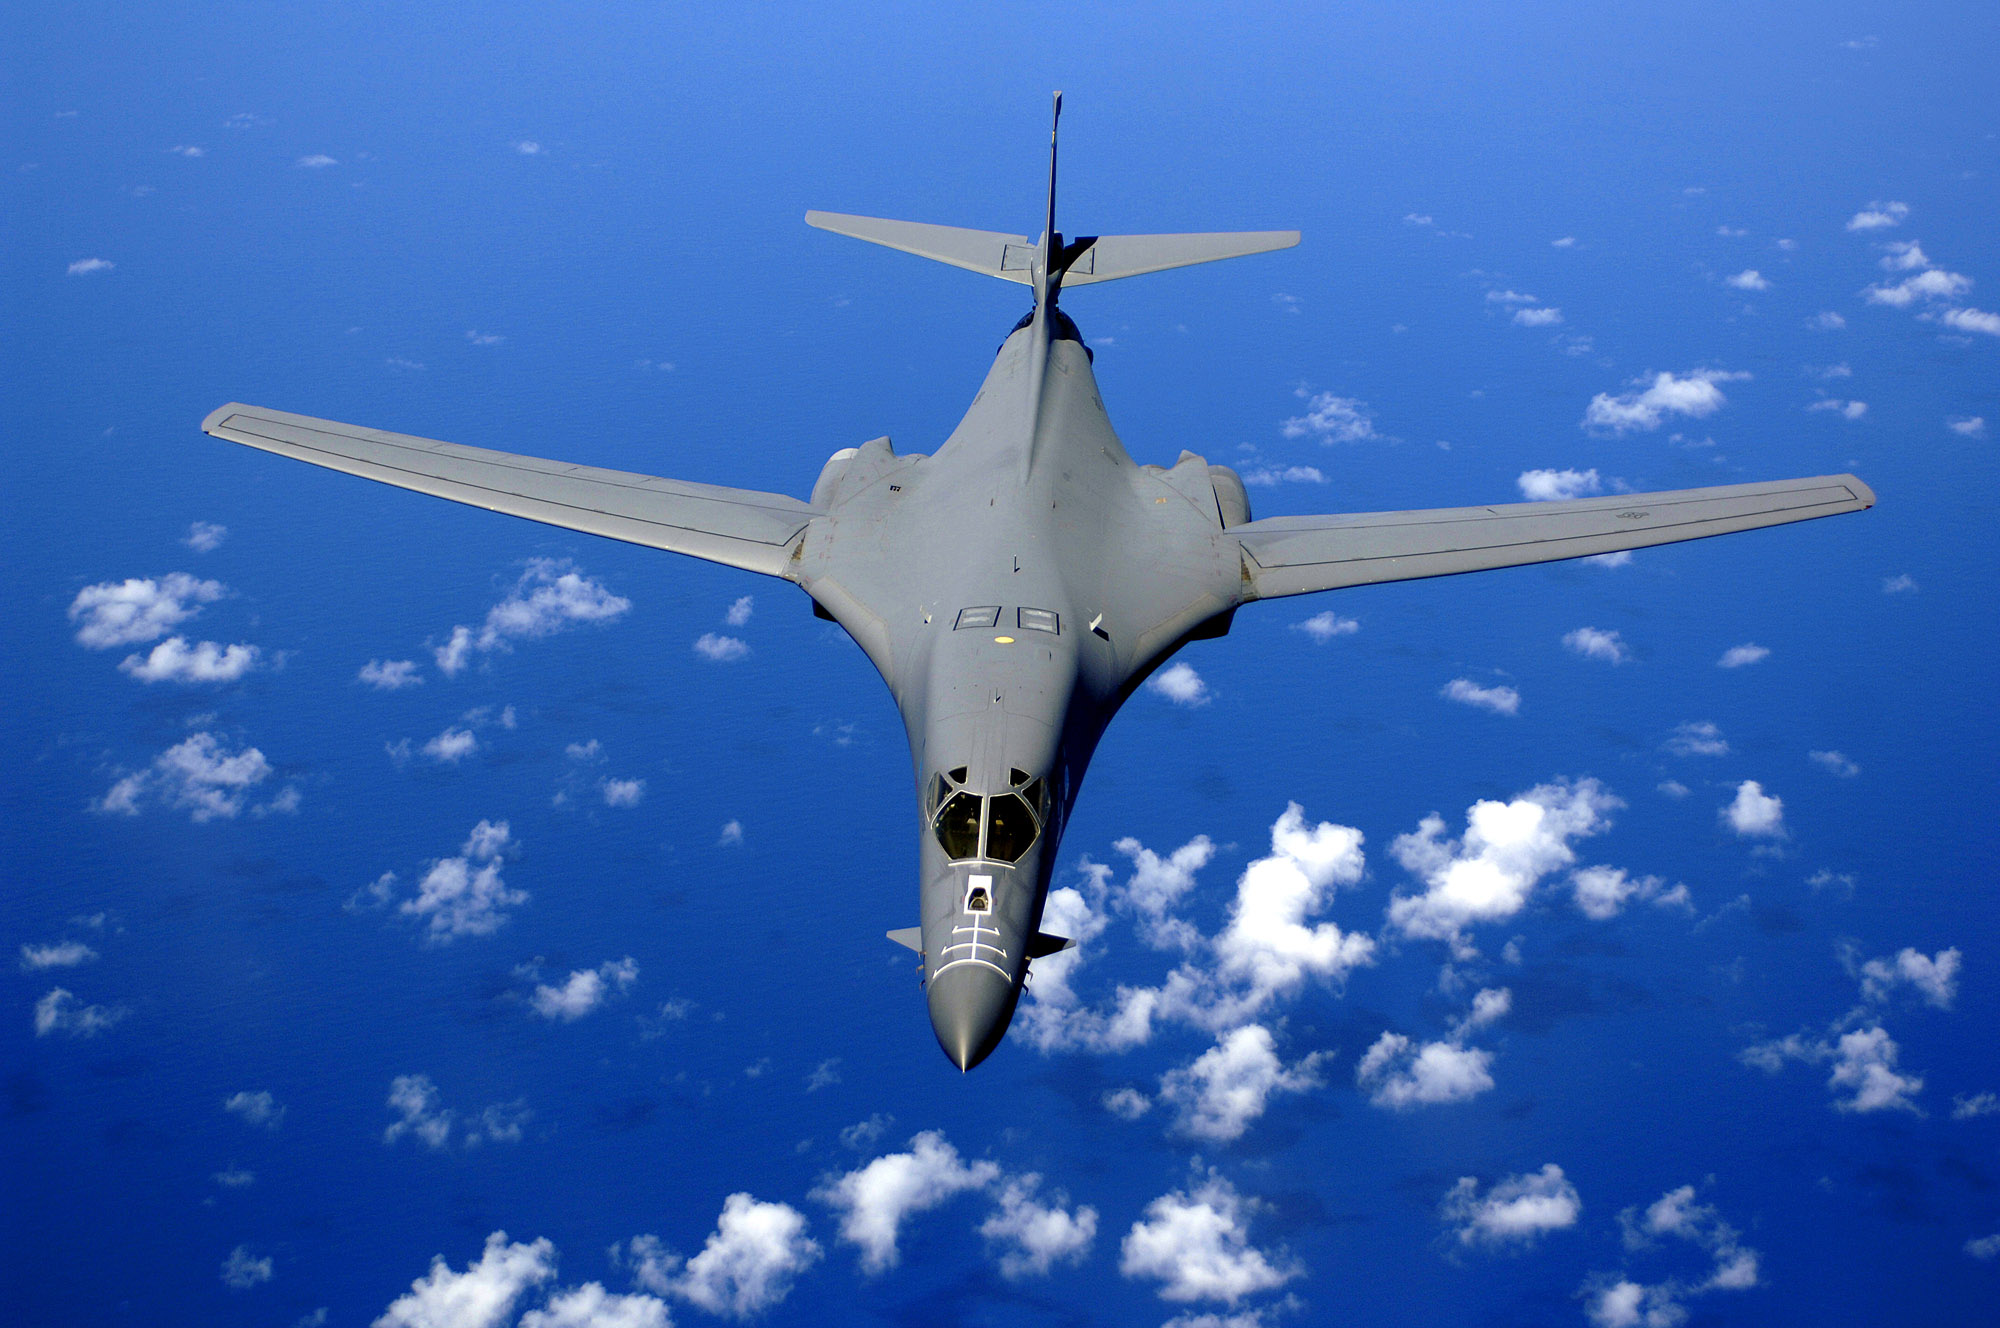 North Korea complains to state media after US sends B-1 bombers over Korean Peninsula Featured